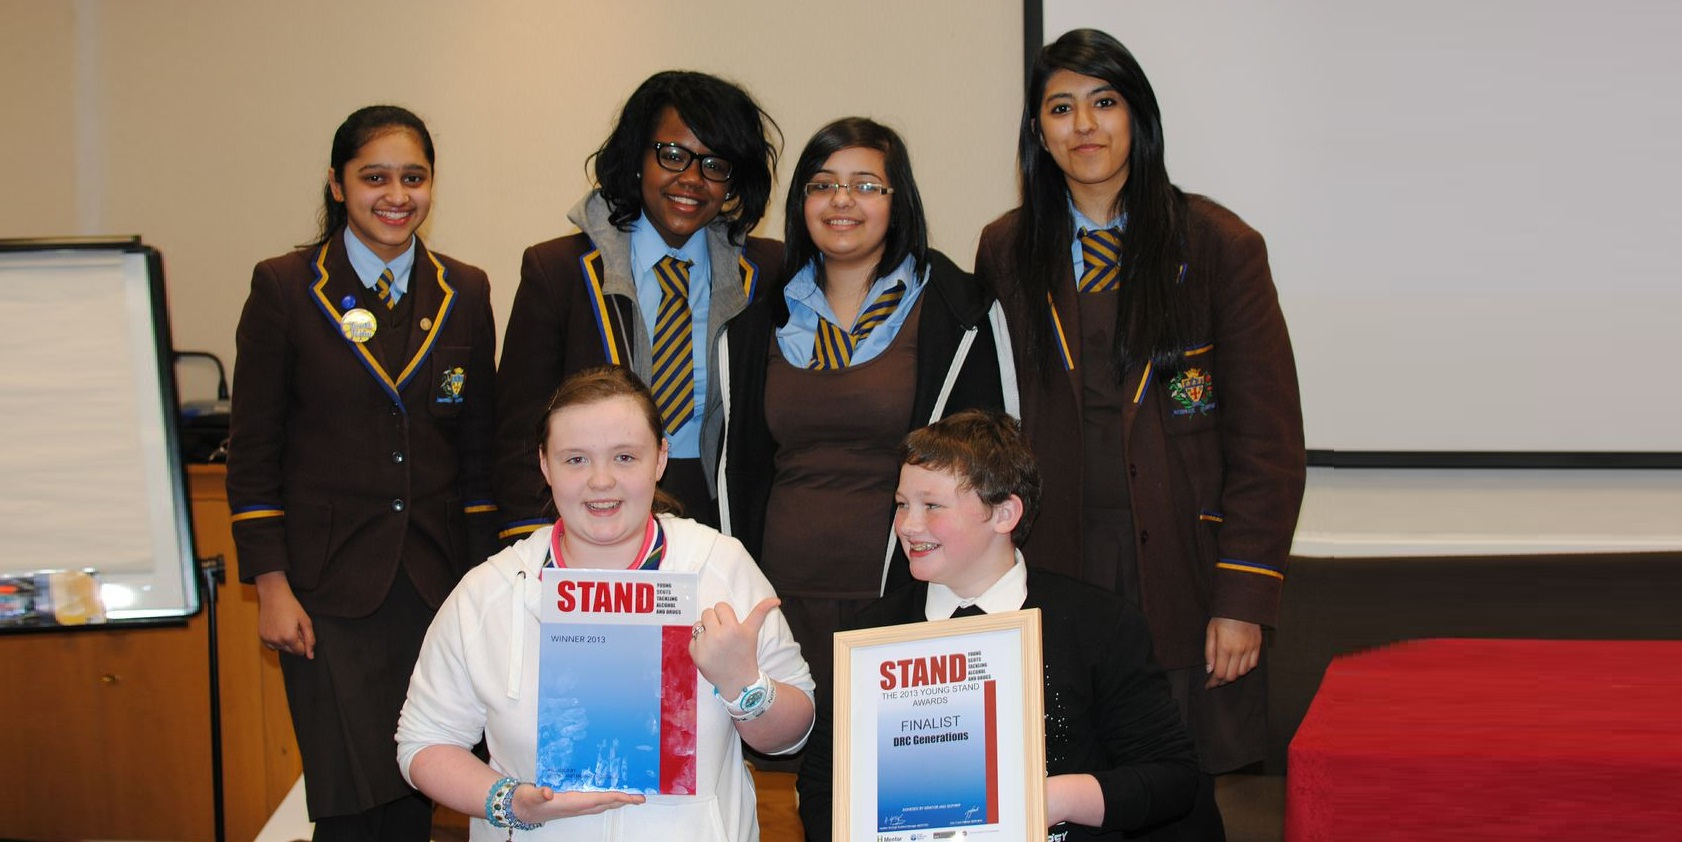 STAND award winners